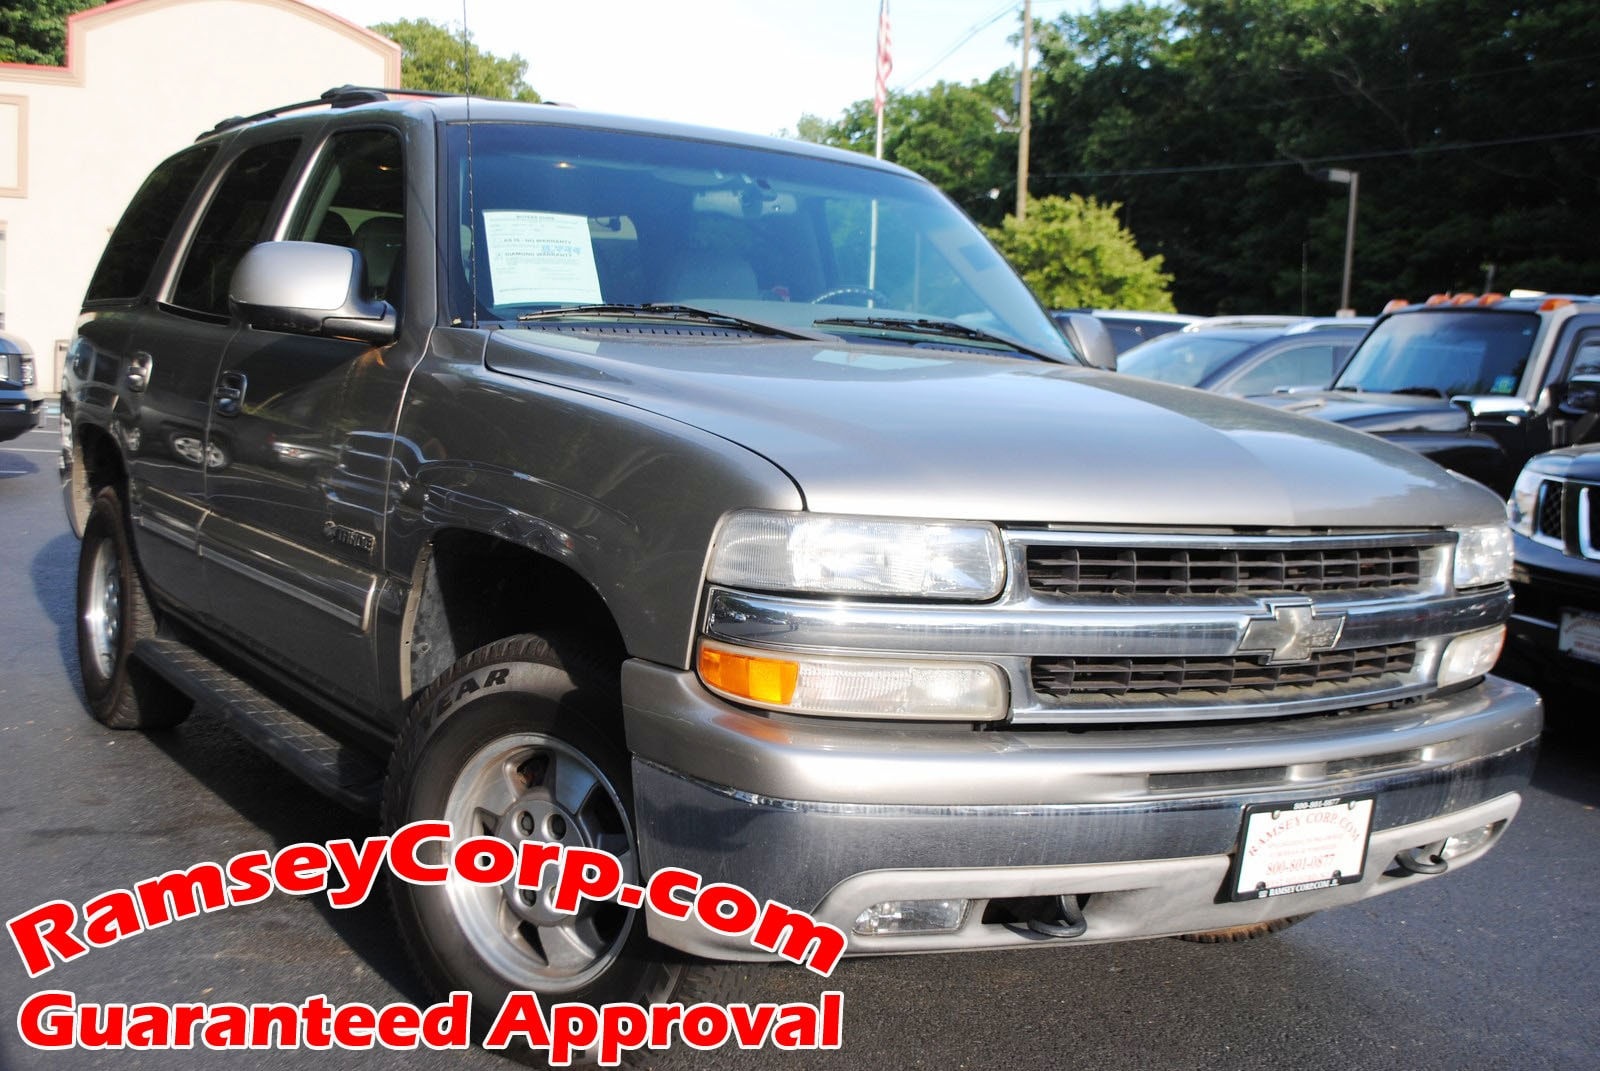 hight resolution of used 2001 chevrolet tahoe for sale at ramsey corp vin 1gnek13t31r141645